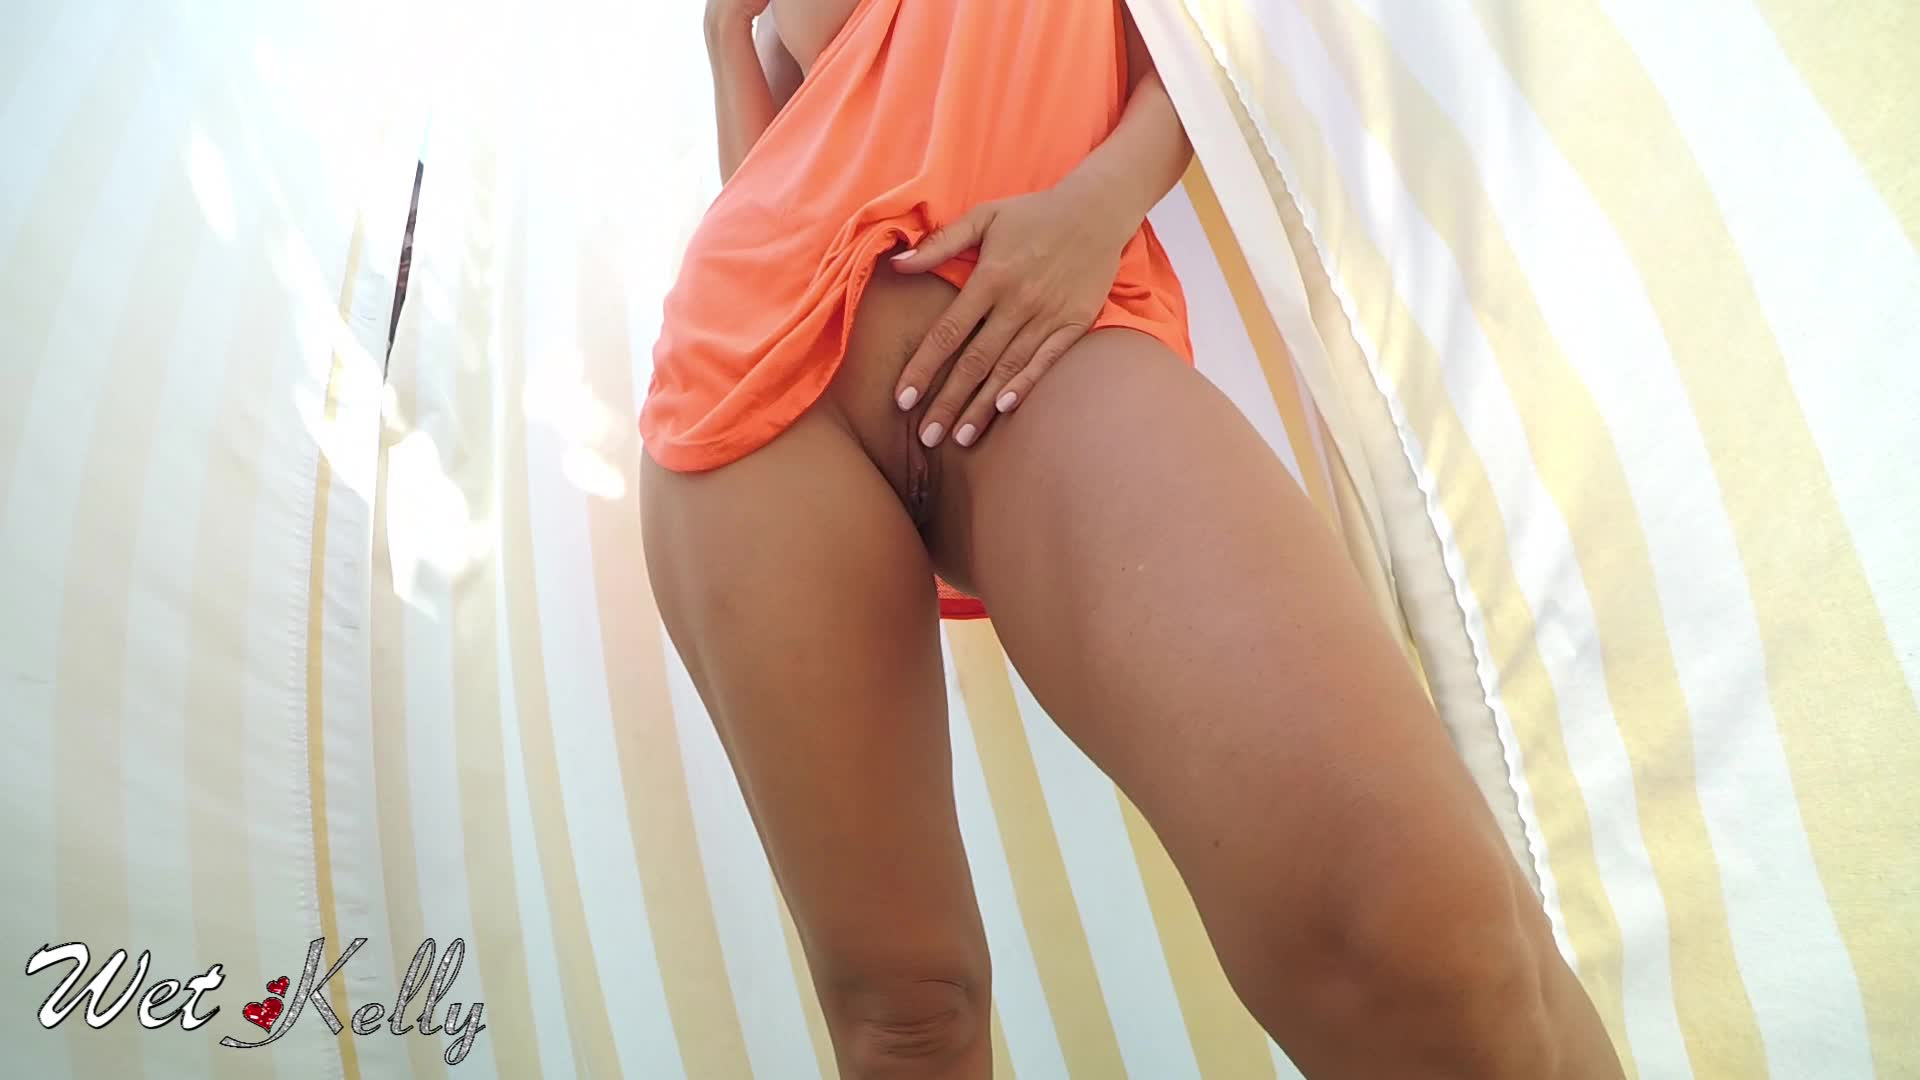 Flash And Nude On The Balcony - Free Porn Videos - Youporn-5610